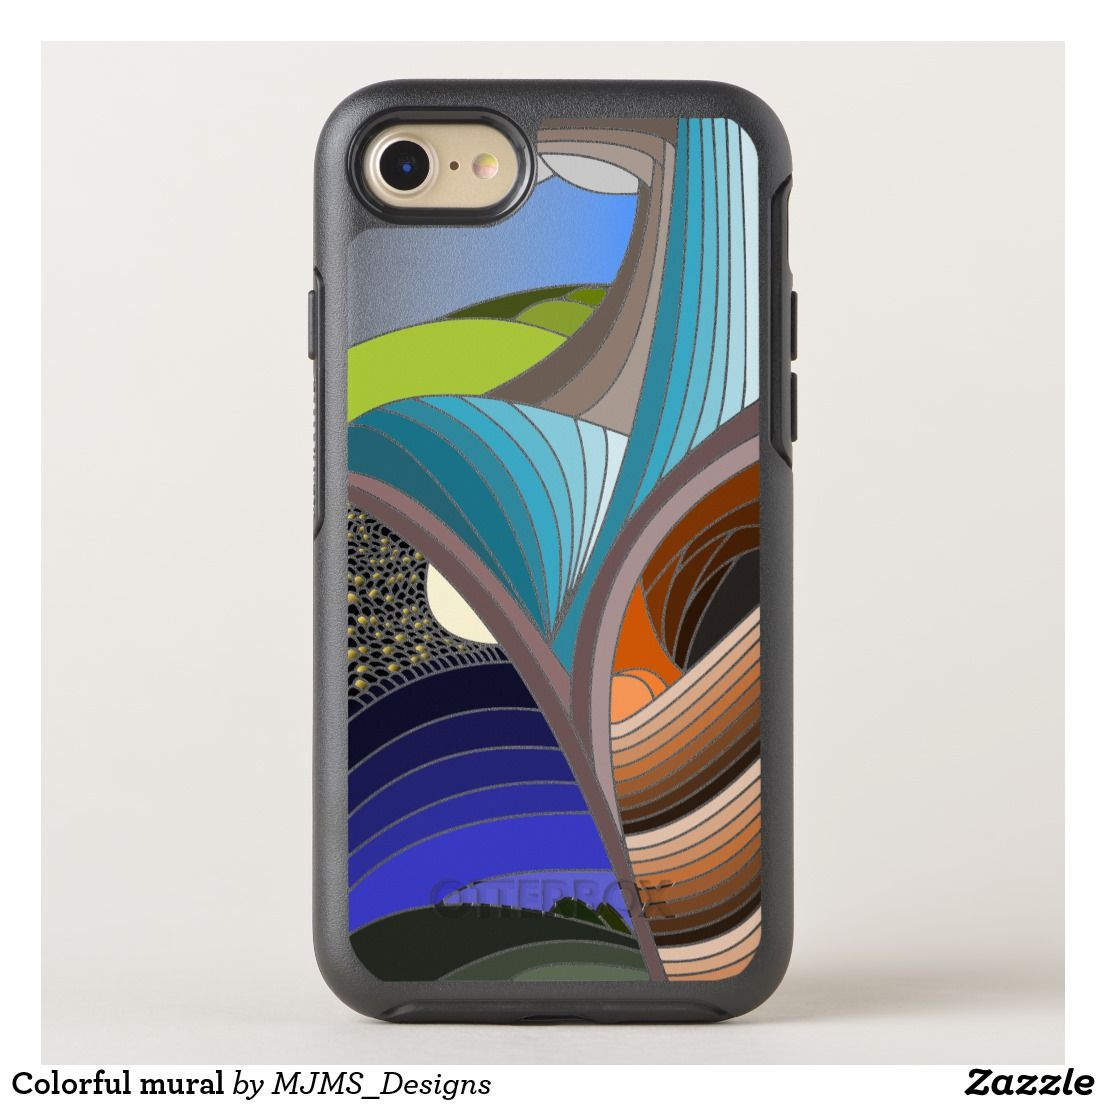 Colorful mural otterbox iphone case iphone